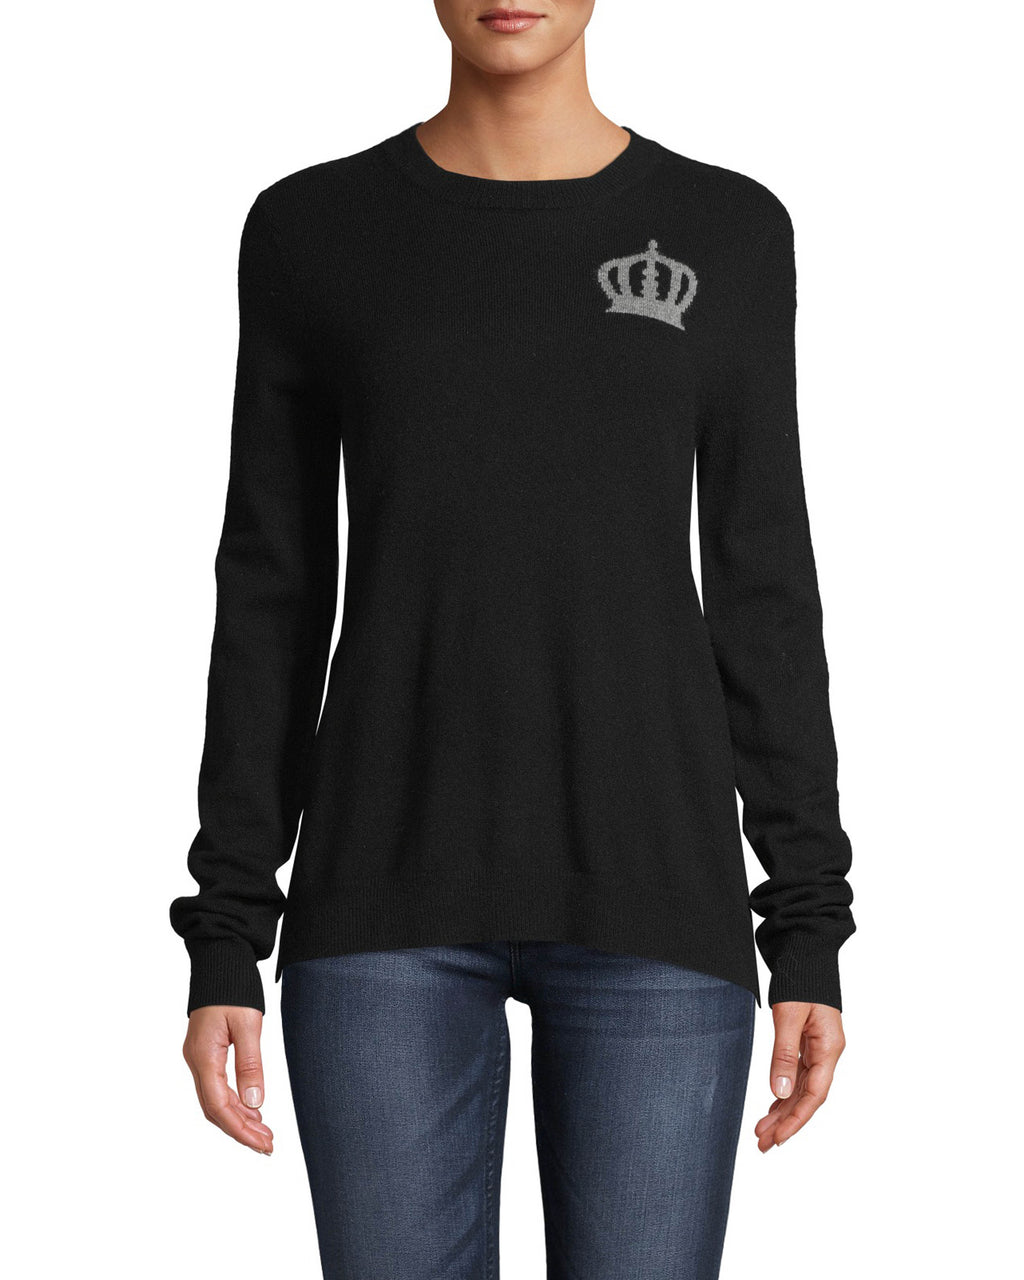 CT18211 - CROWN CREW NECK SWEATER - tops - knitwear - Taking inspiration from our Fall 2020 Runway, this 100% cashmere sweater features crown motifs on the front and back. Designed in a classic crew neck silhouette. Add 1 line break Stylist tip: Wear with black denim for an edgy but laidback look.